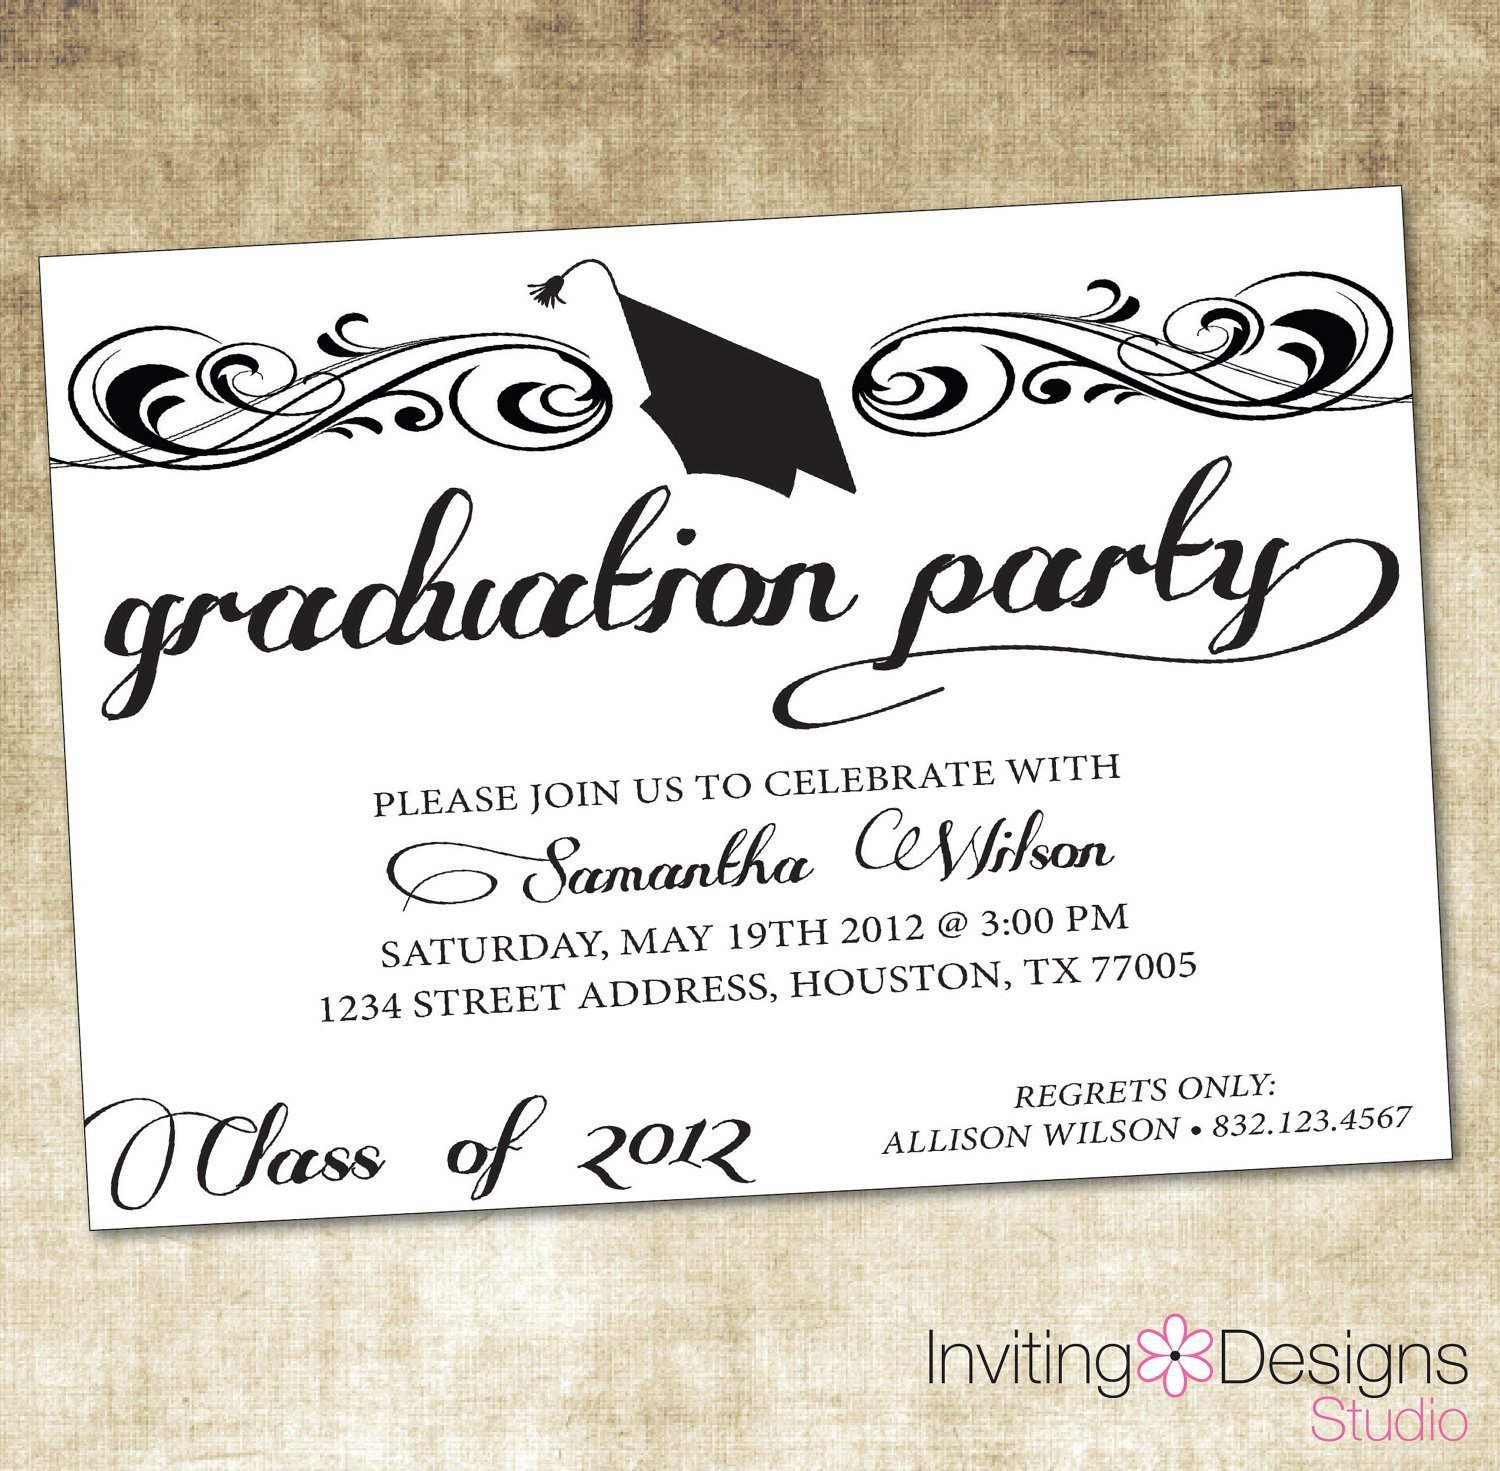 Graduation Party Invitation Template Free Graduation Invitation Templates Free Graduation